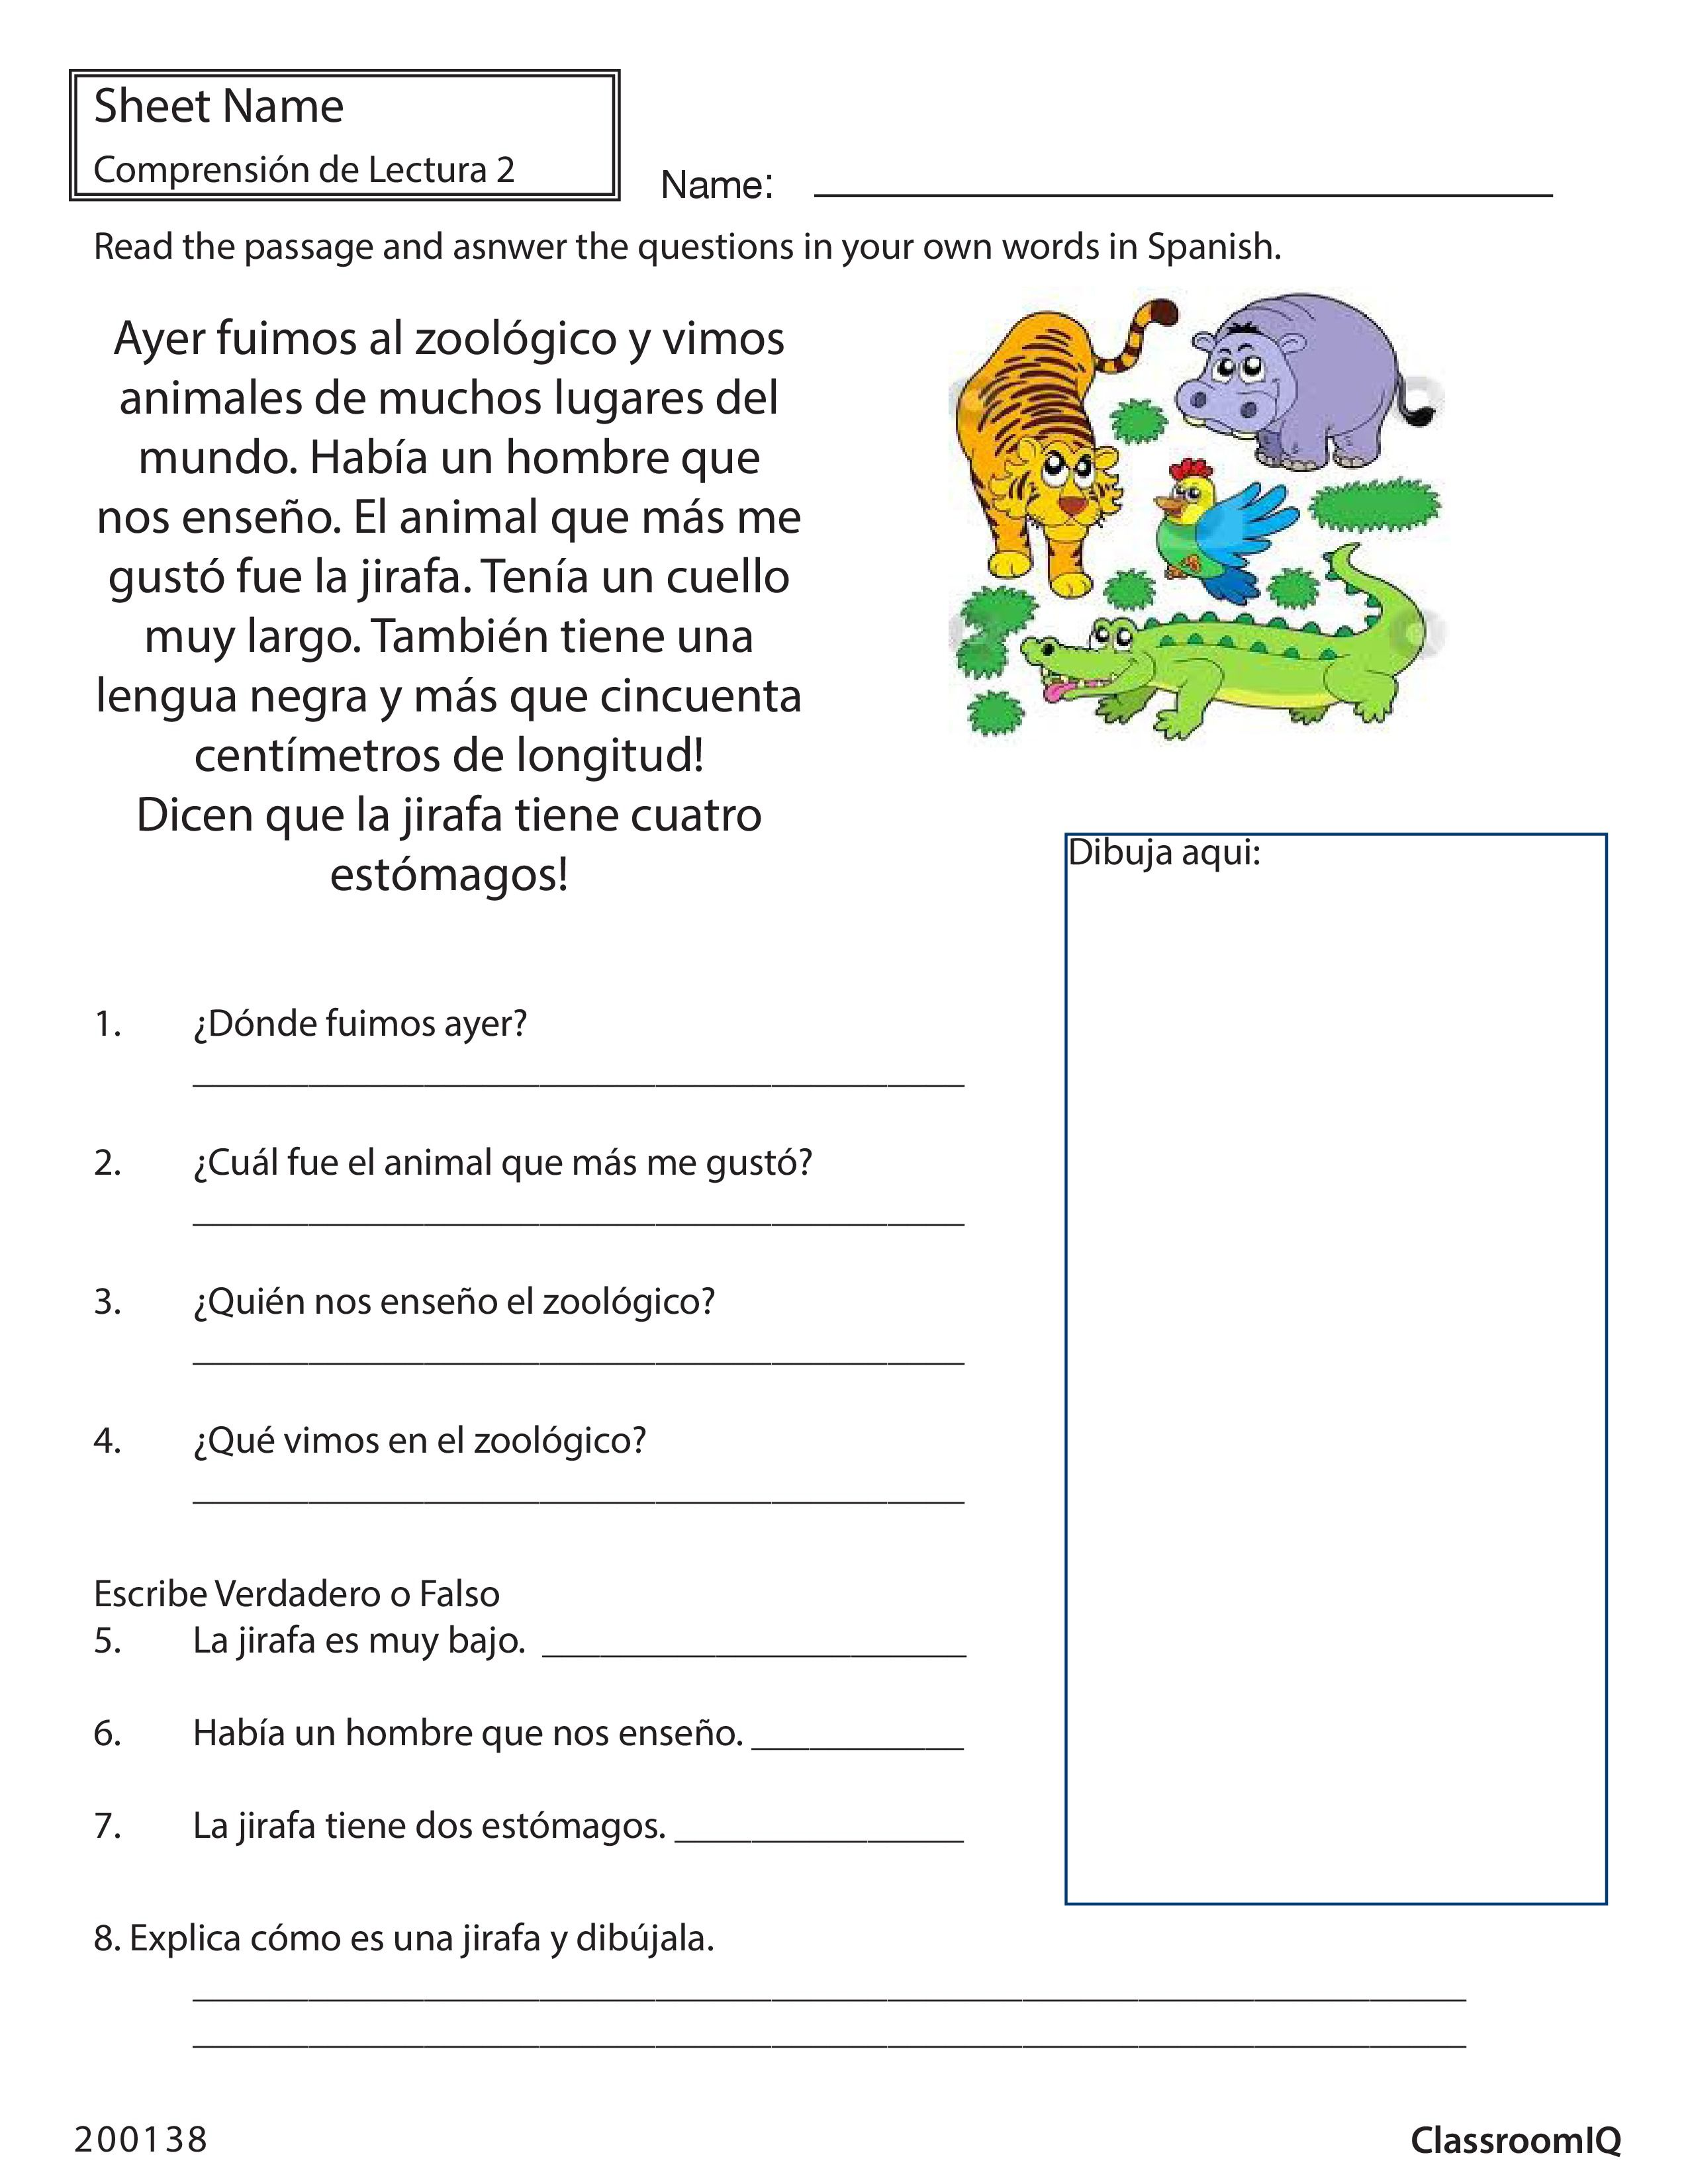 Respond To Passage Zoo Spanishworksheet Newteachers